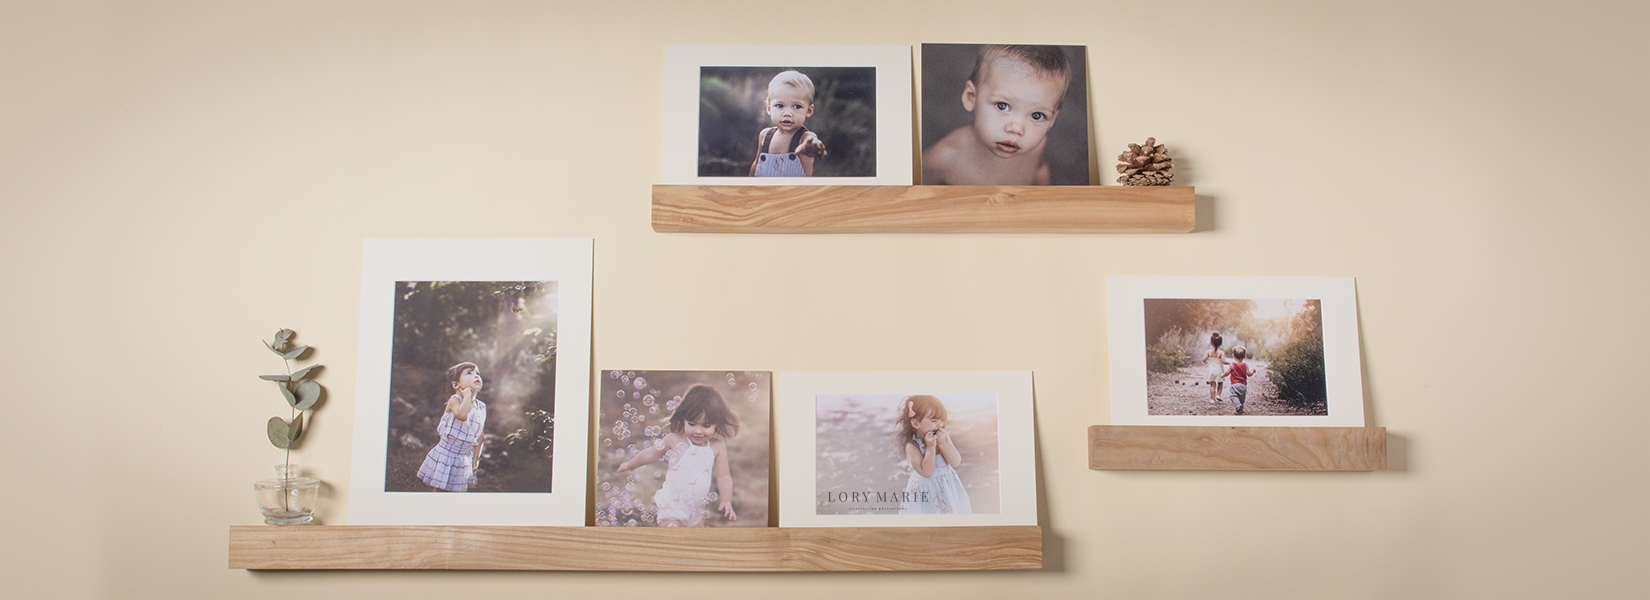 Wooden Photo Ledge Professional Printing Services